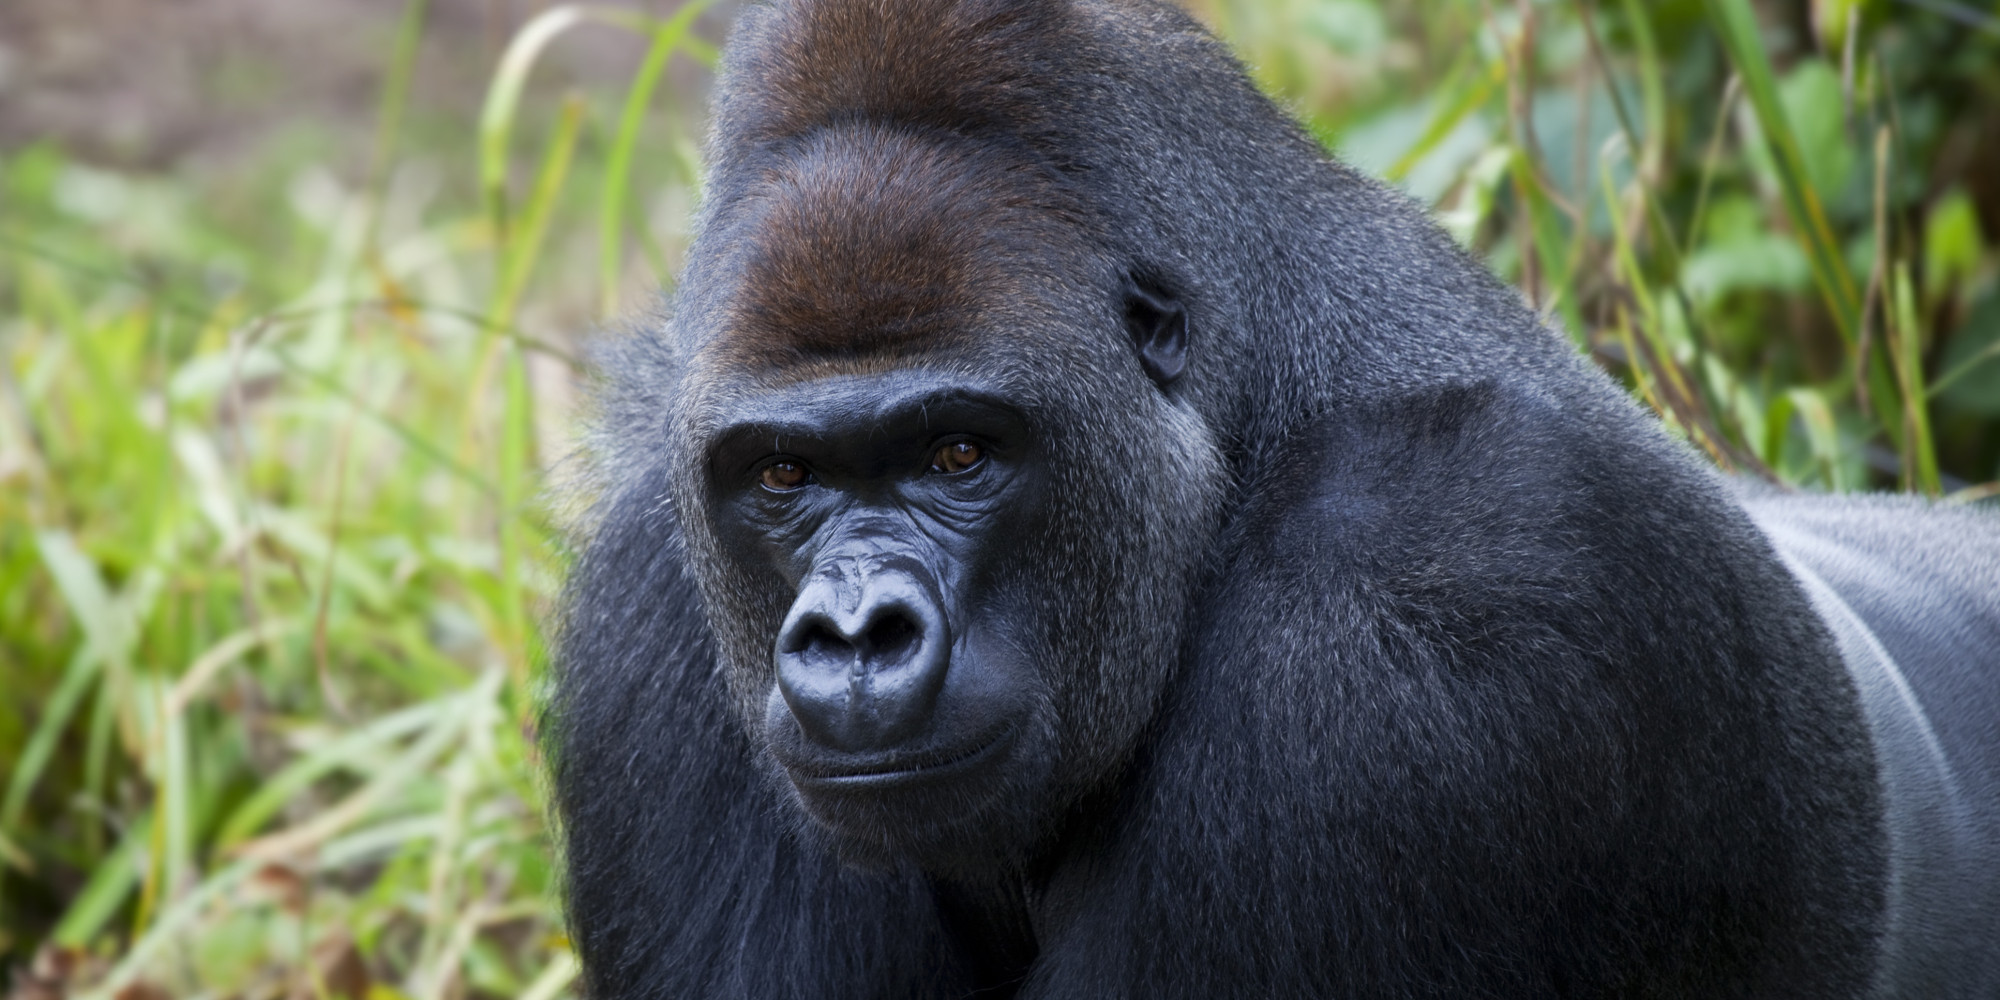 Is Your Smartphone Killing Gorillas? | HuffPost